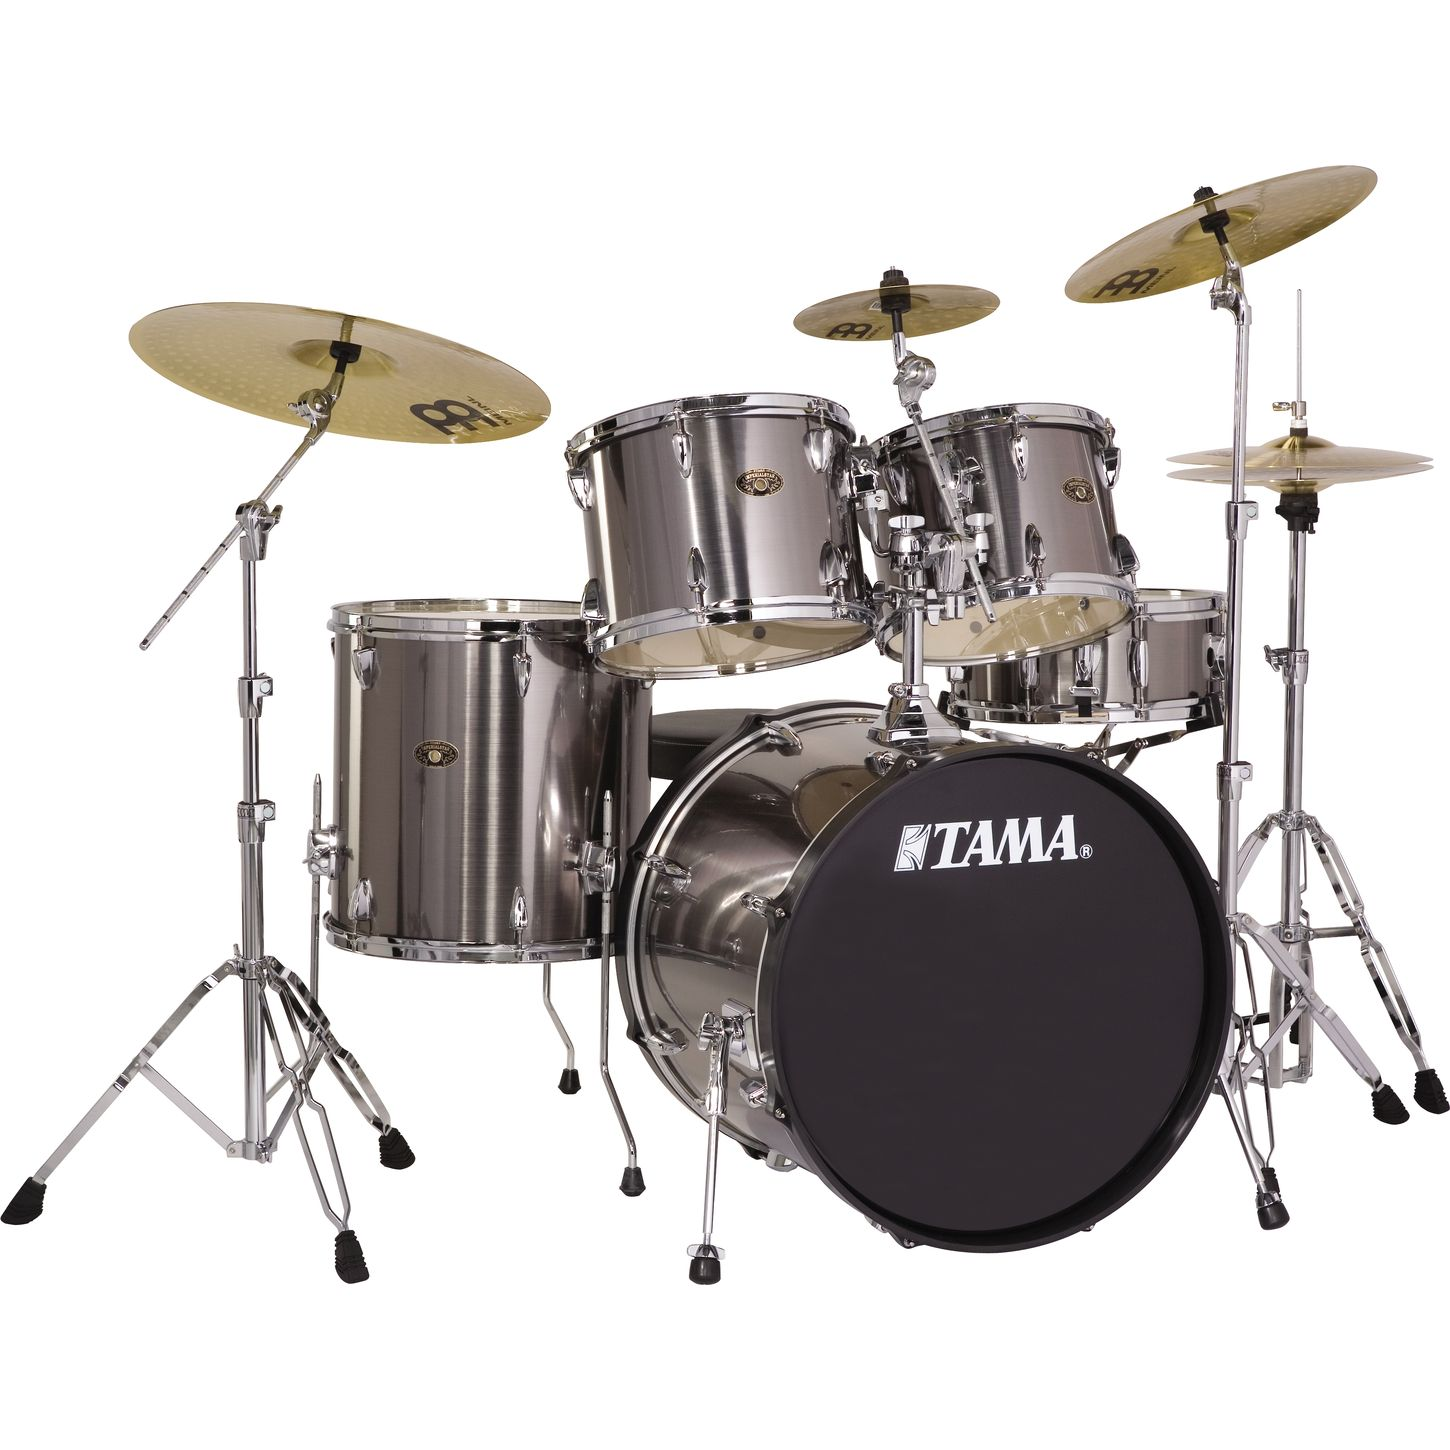 tama imperialstar 5 piece standard drum set with 20 bass drum and cymbals musician 39 s friend. Black Bedroom Furniture Sets. Home Design Ideas